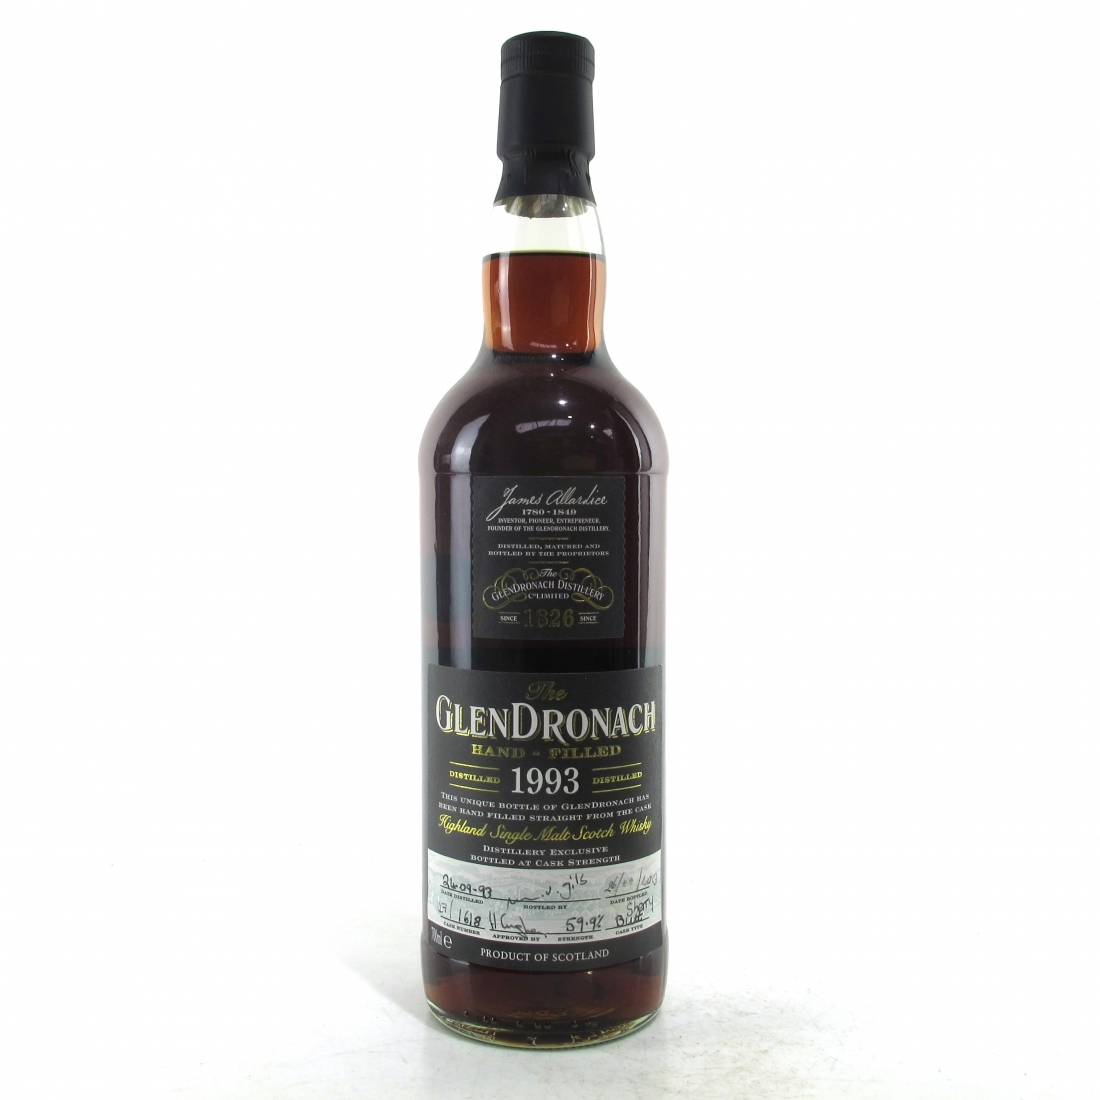 Glendronach 1993 Hand Filled 20 Year Old Cask #1618